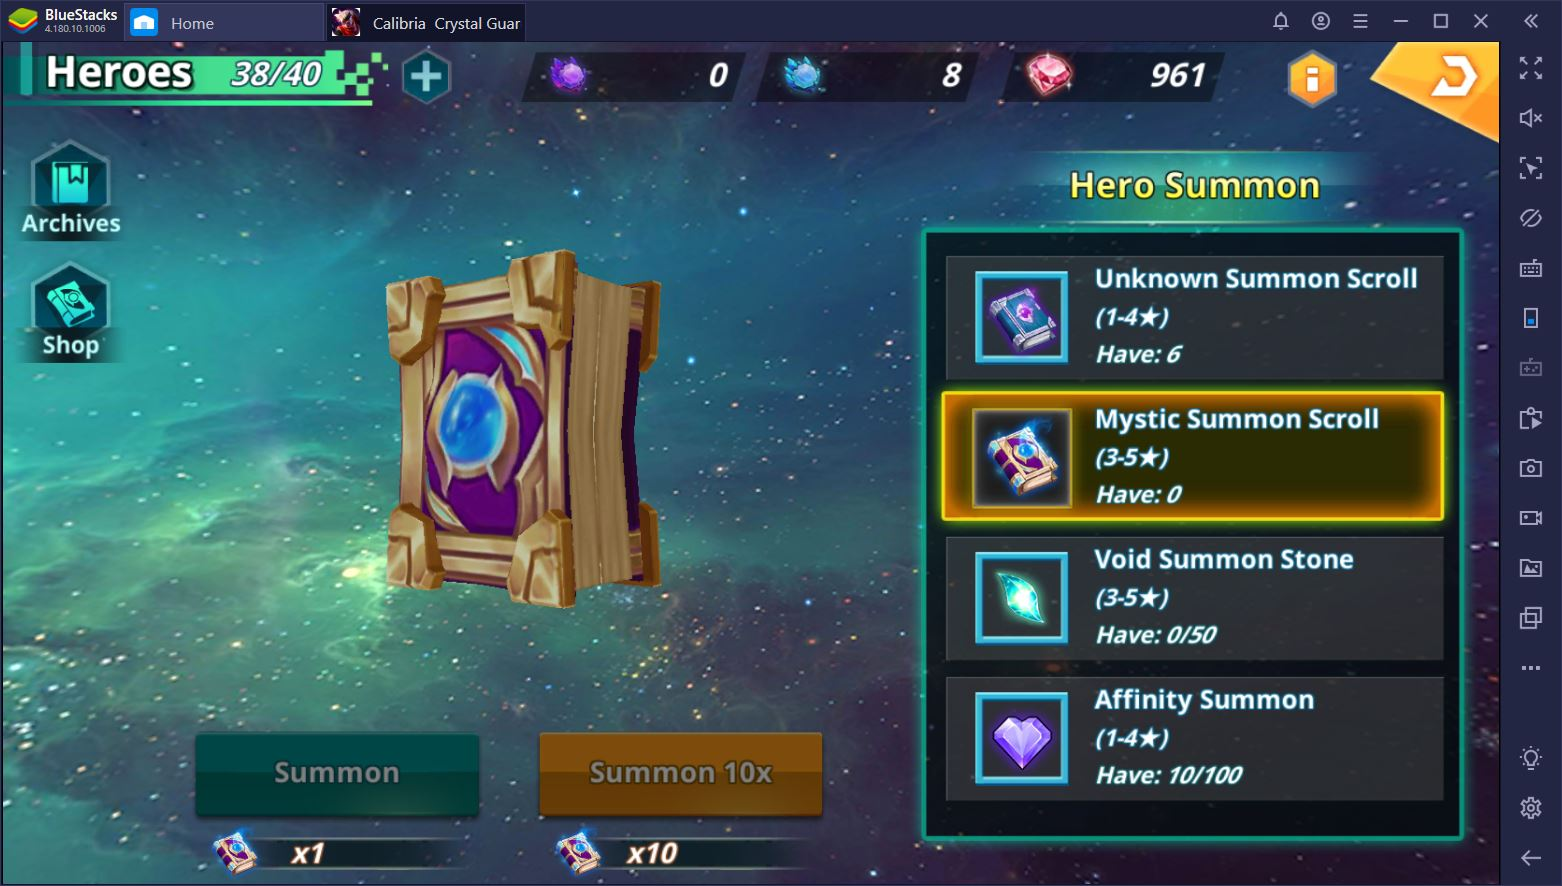 How to Play Calibria: Crystal Guardians on PC with BlueStacks